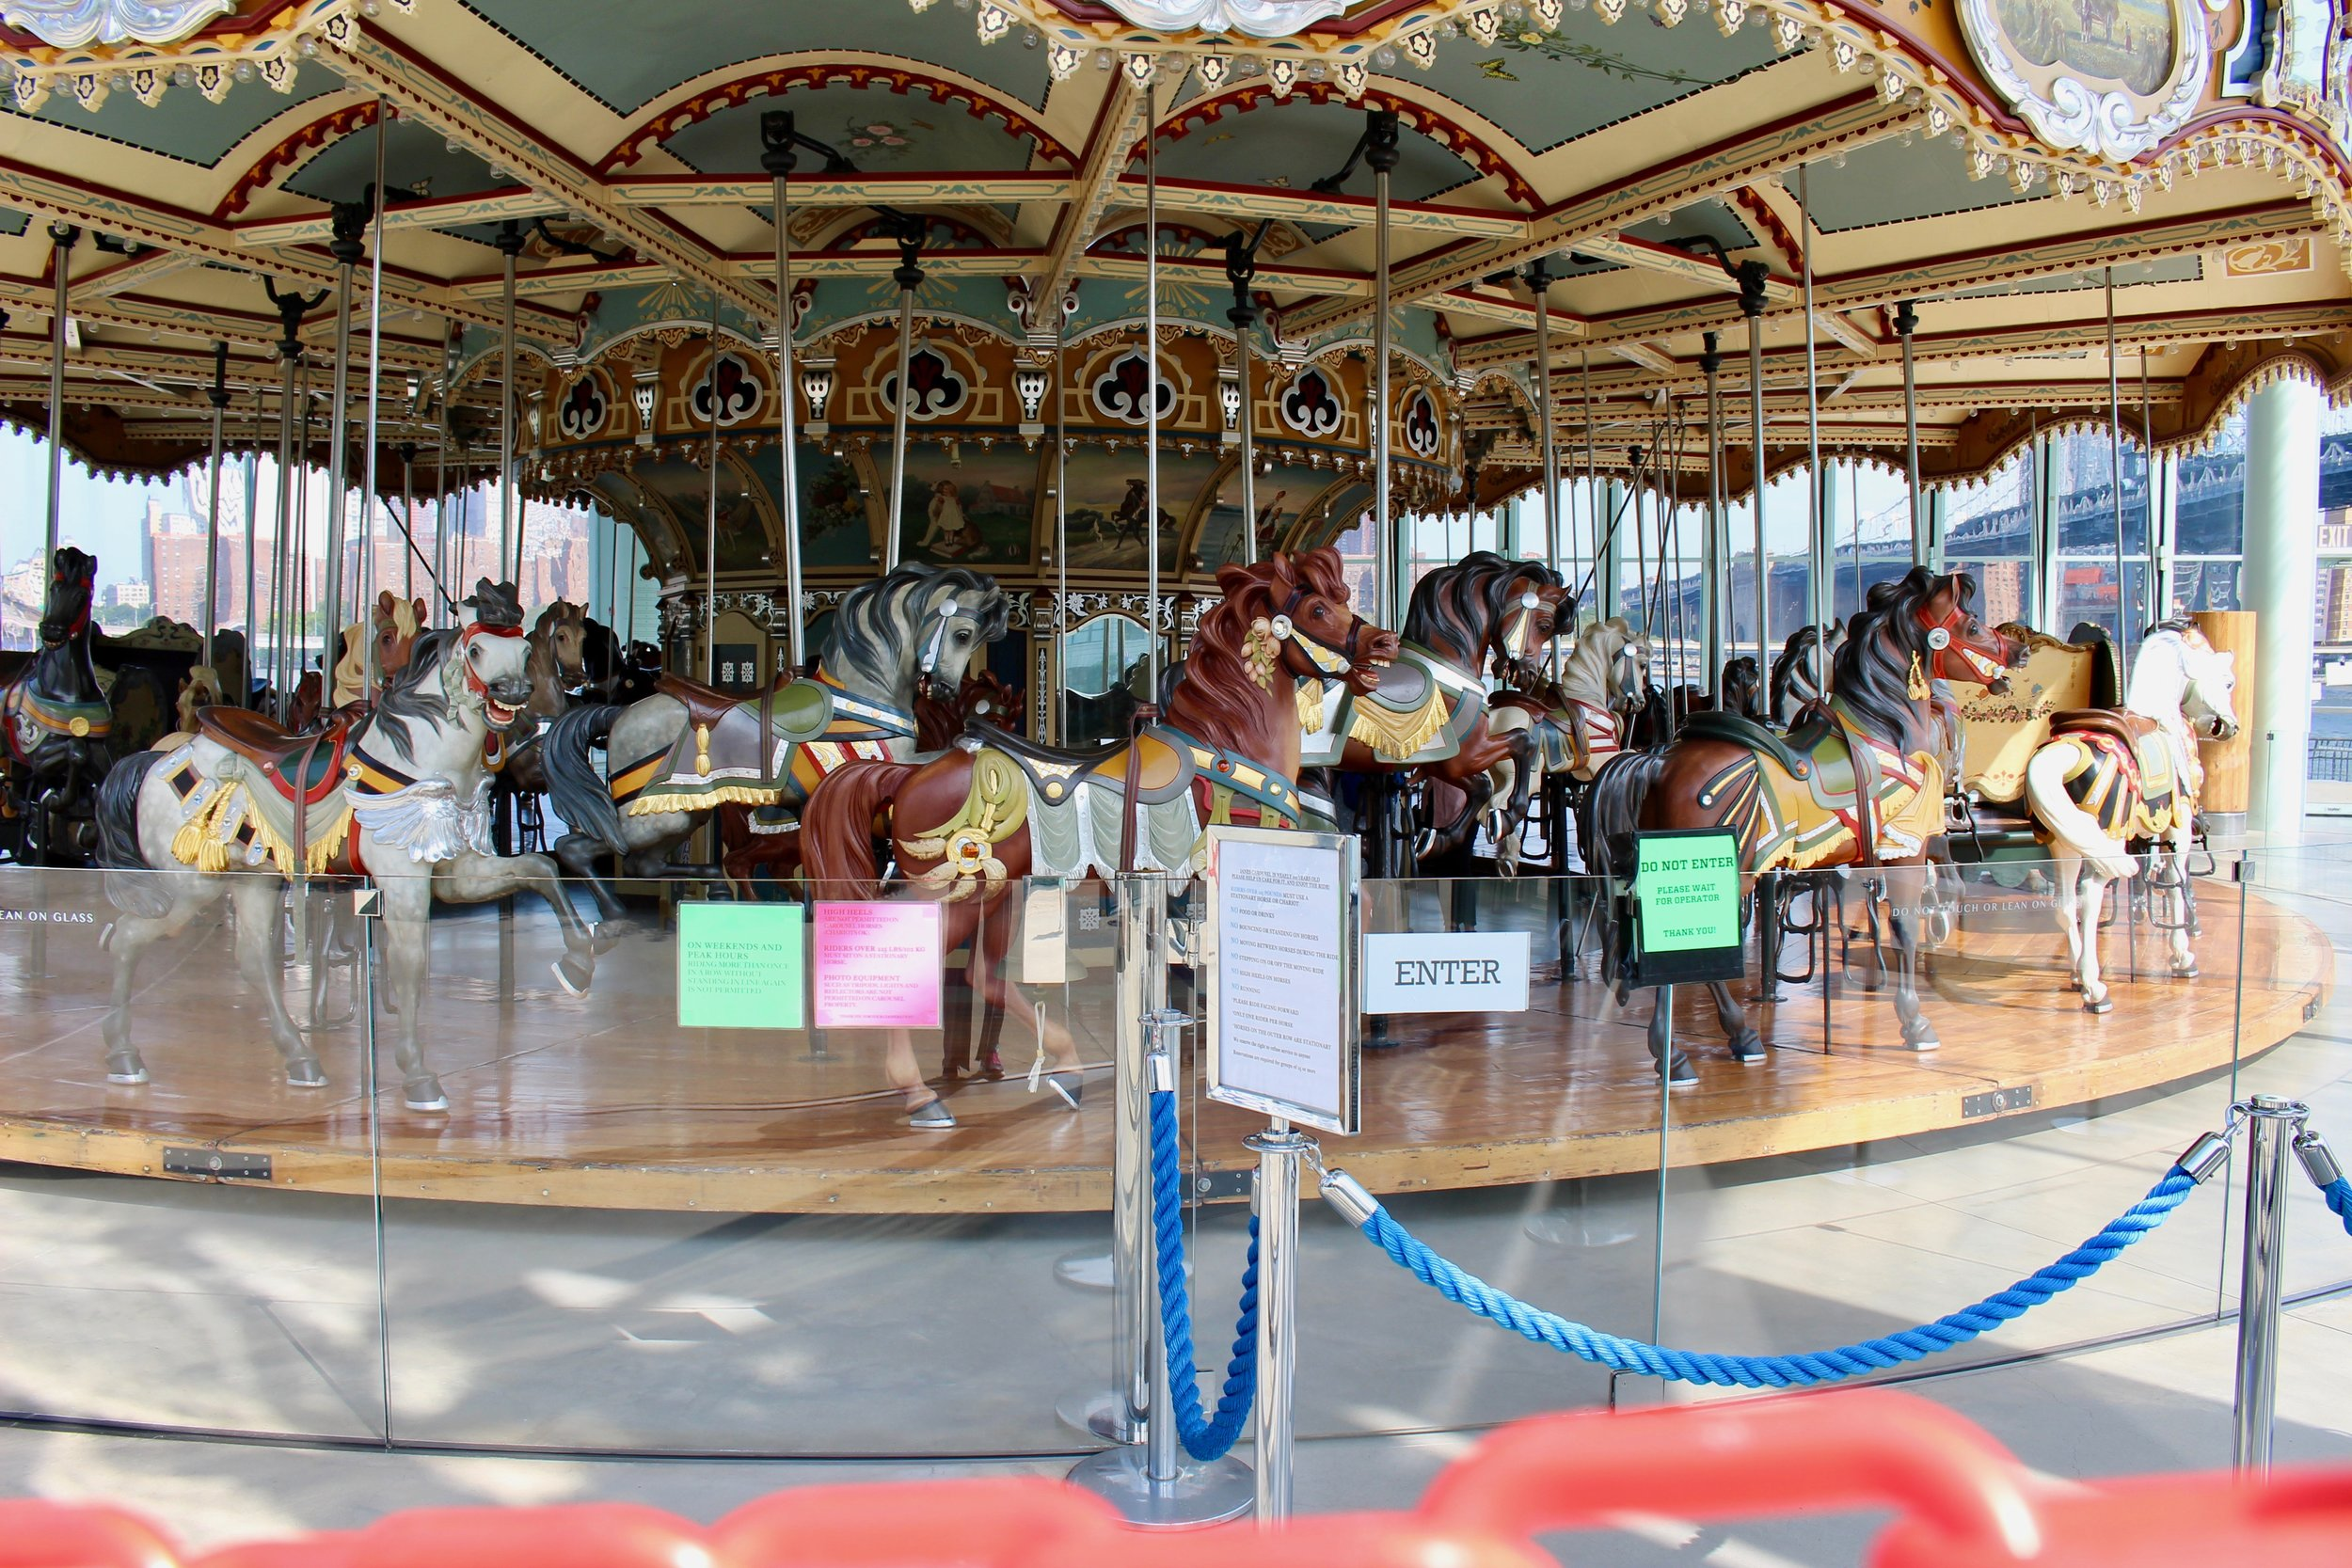 The Carousel, not yet open for the day. The place where children dream and their imaginations run freely. Hummingbird has a great story set at Jane's Carousel,  Magic.